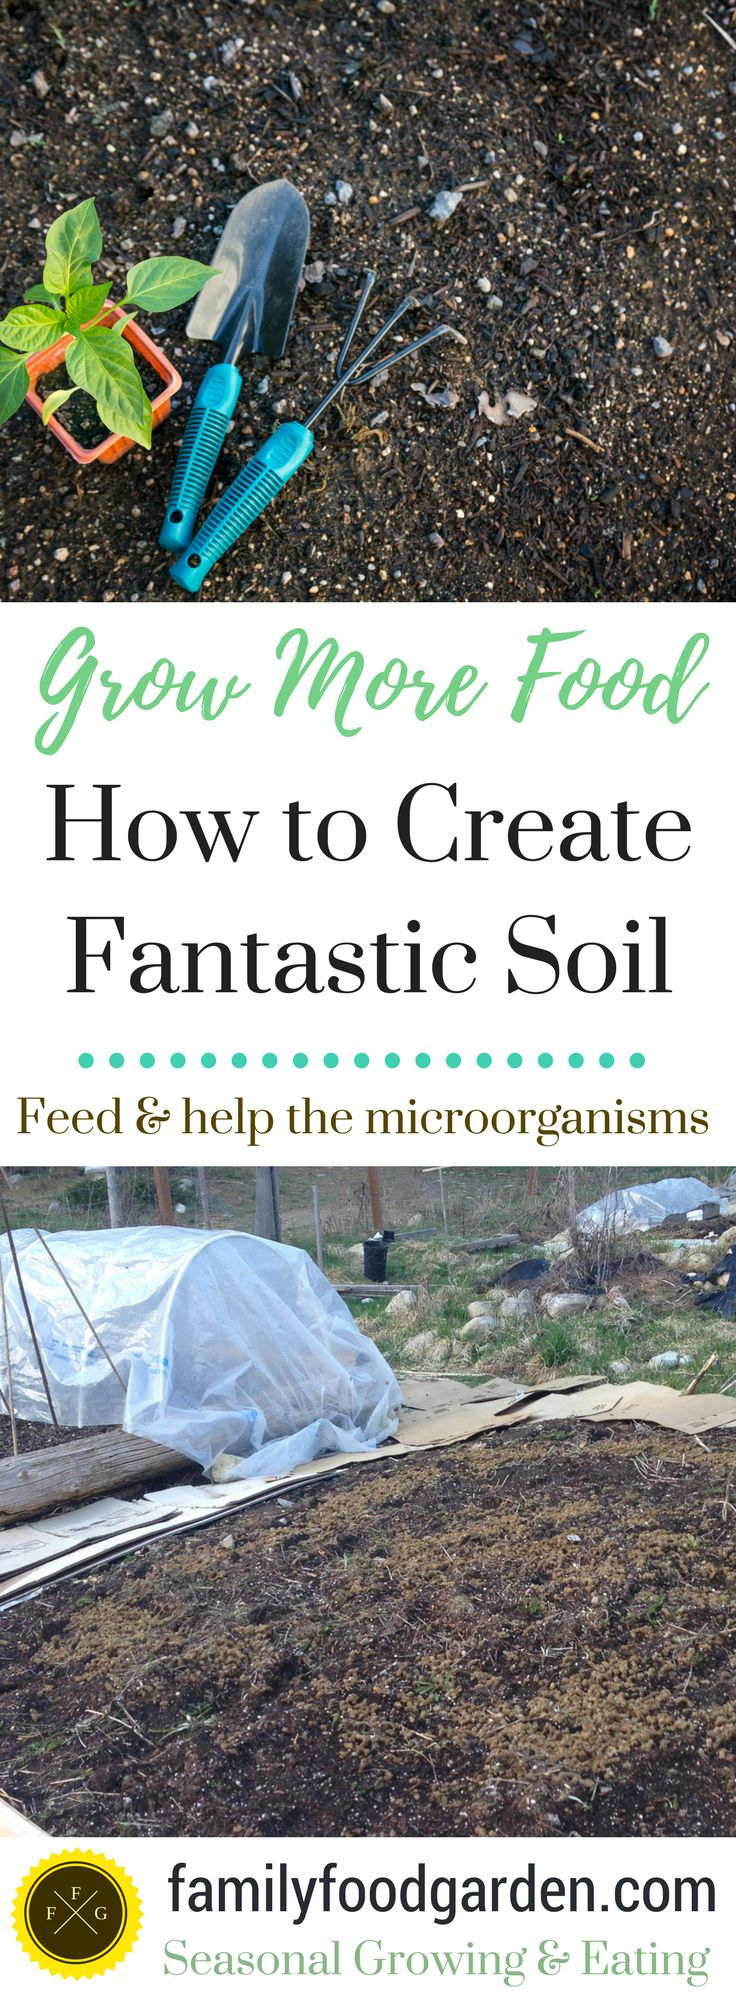 Creating Fantastic Soil (with the help of Microorganisms)